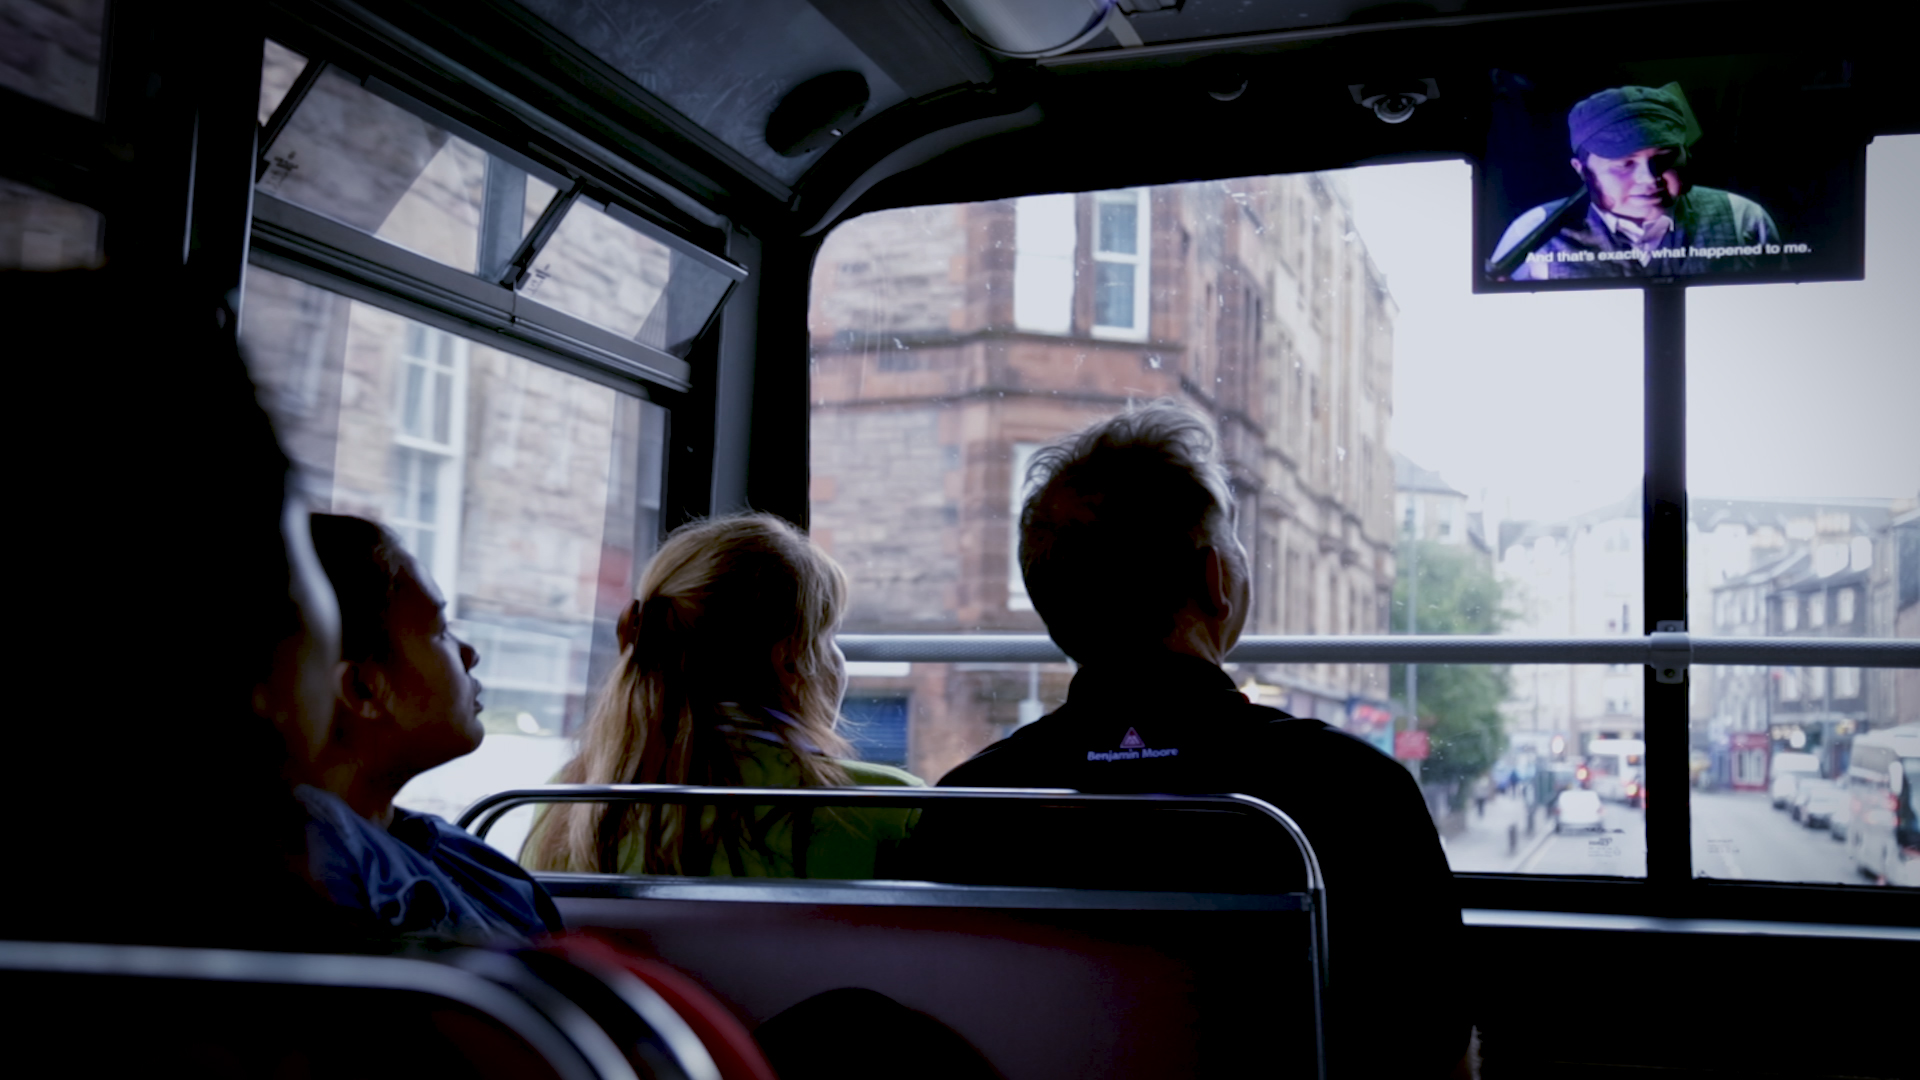 haunted-history-bus-edinburgh